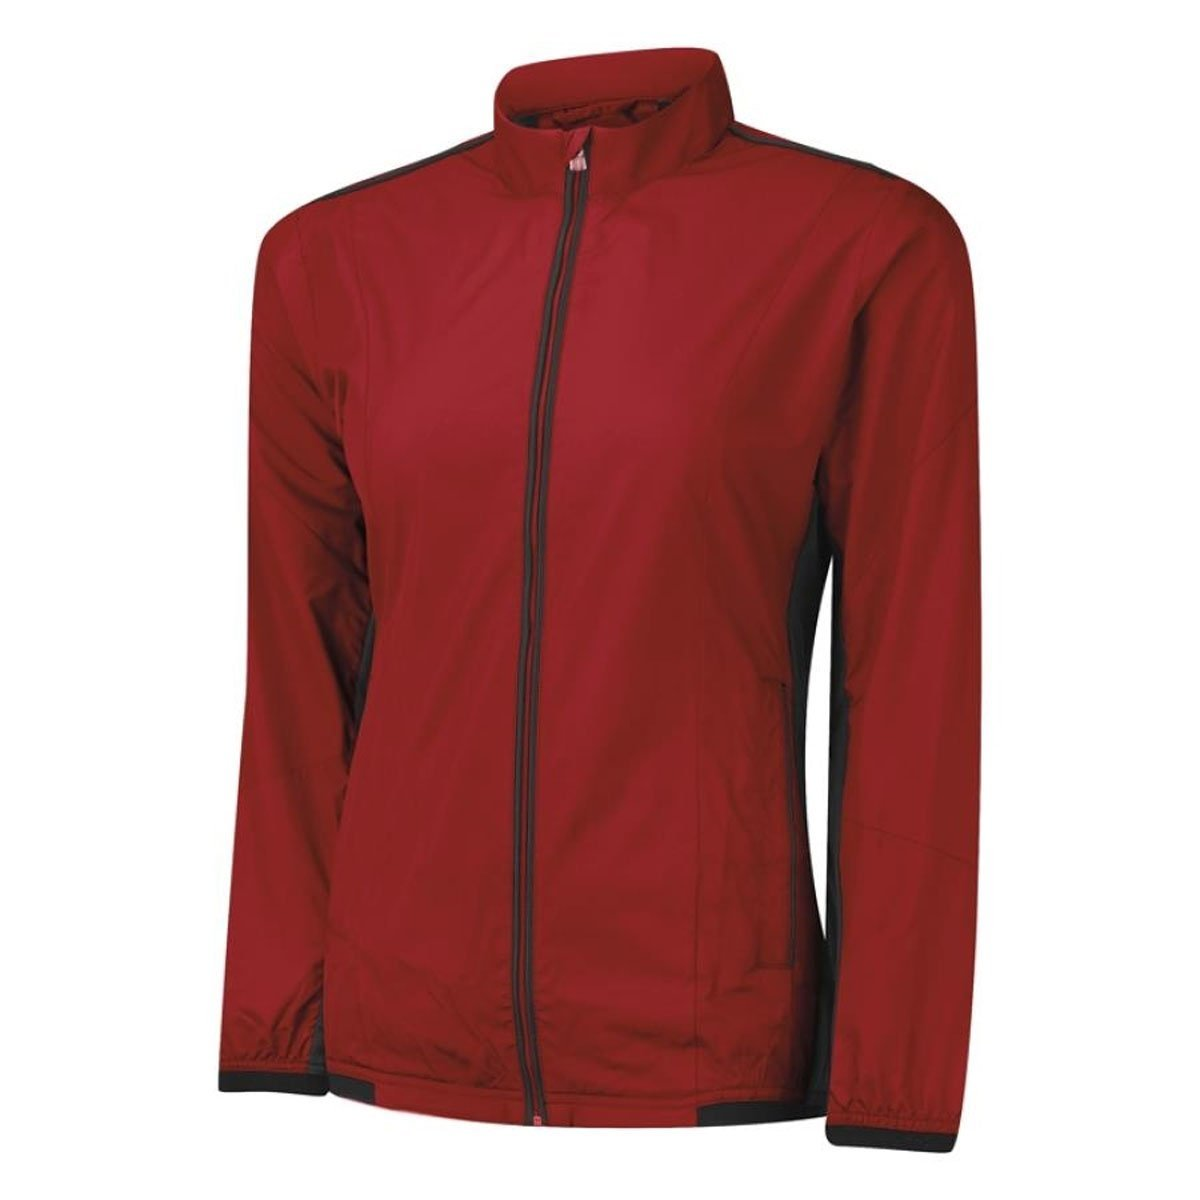 Womens Adidas Climaproof Stretch Golf Wind Jackets